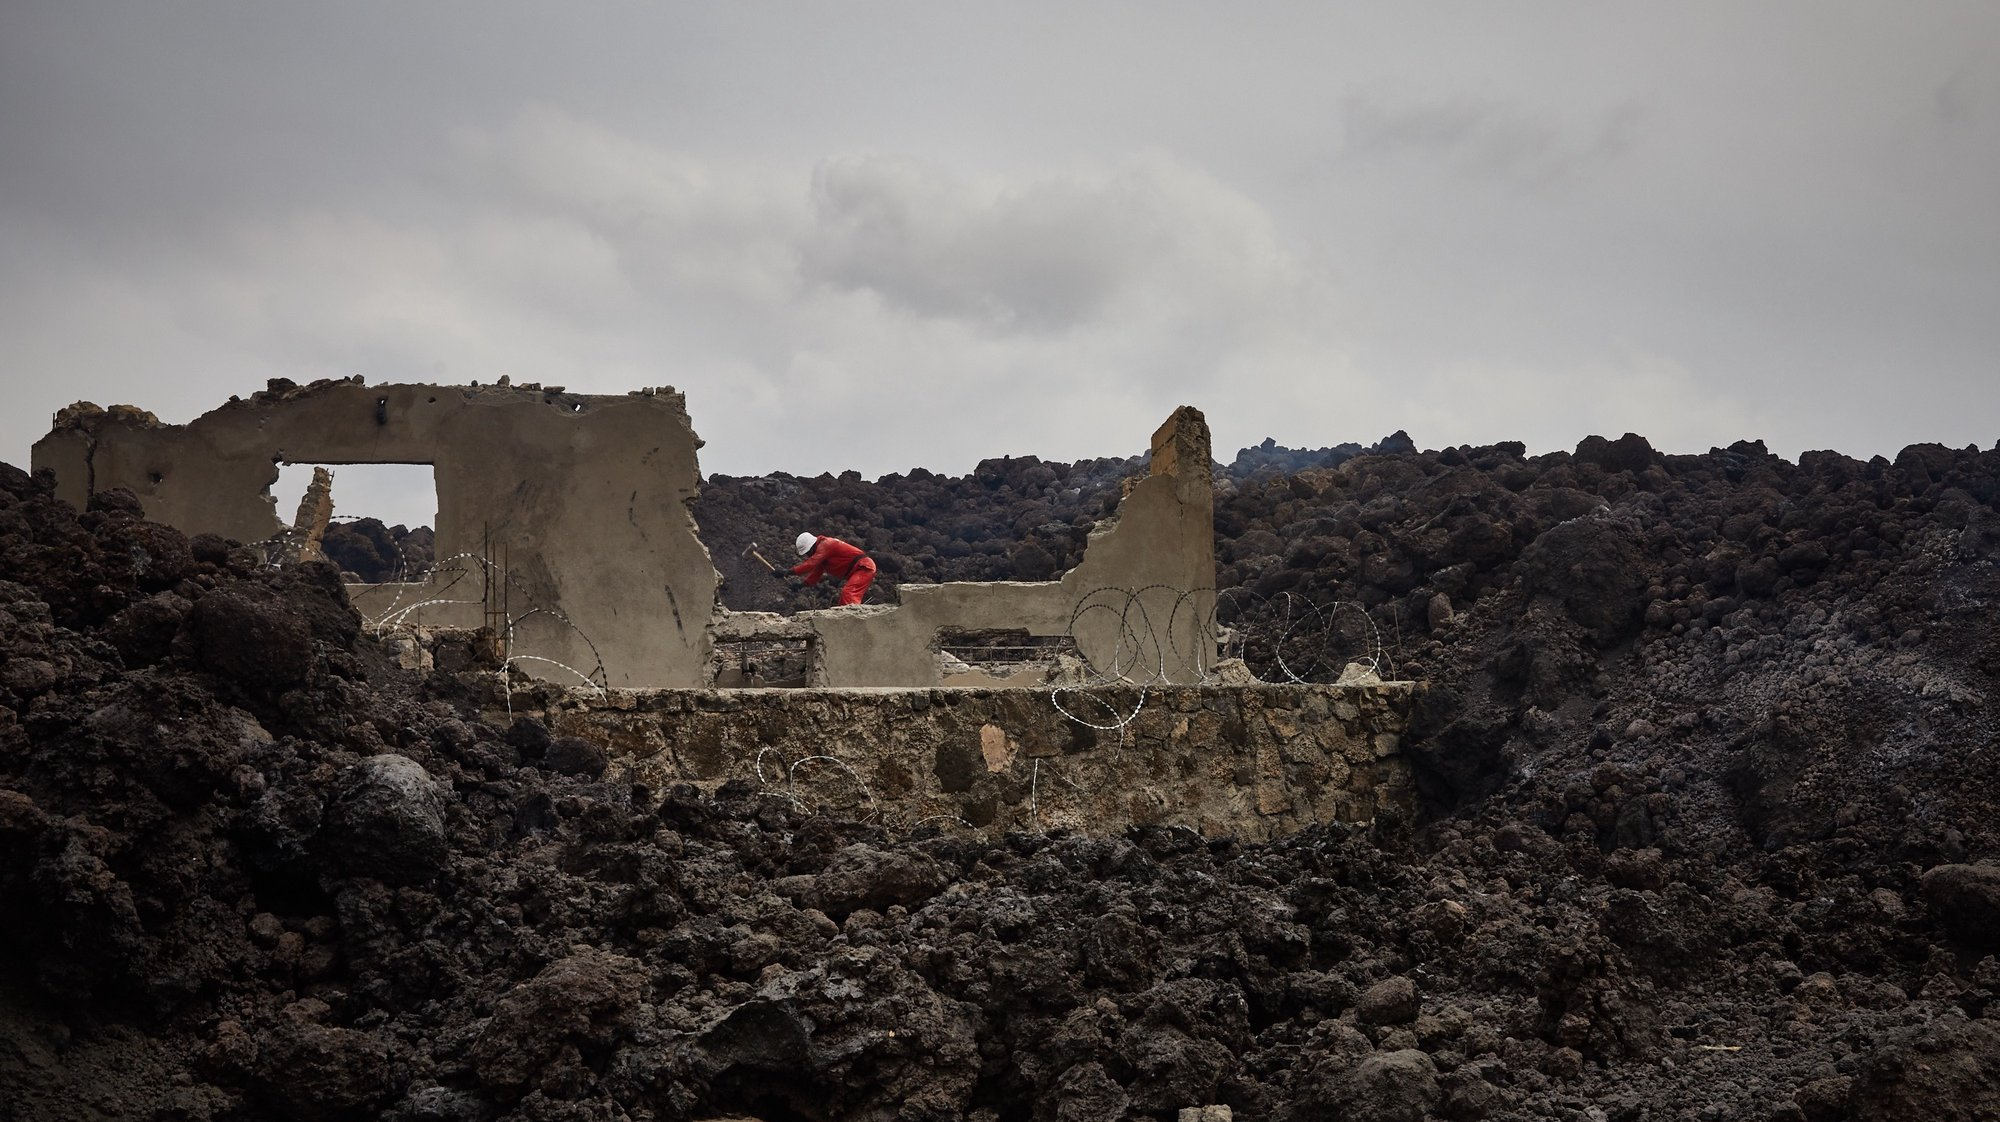 epa09227823 Workers begin to clear piles of lava in the aftermath of a volcanic eruption in Goma, North Kivu, Democratic Republic of Congo, 25 May 2021. One of the planets most active volcanoes Mount Nyiragongo in eastern Democratic Republic of Congo erupted 22 May 2021. According to local journalists, aftershocks from the Nyiragongo volcanic eruption continue in the town of Goma. According to the United Nations children's agency (UNICEF) 25 May 2021 more than 100 children are missing after having been separated from their parents. Foreign countries, like the United Kingdom, have warned their nationals through their embassies of the continuation of seismic activity and cannot rule out further fissures or lava flow.  EPA/HUGH KINSELLA CUNNINGHAM